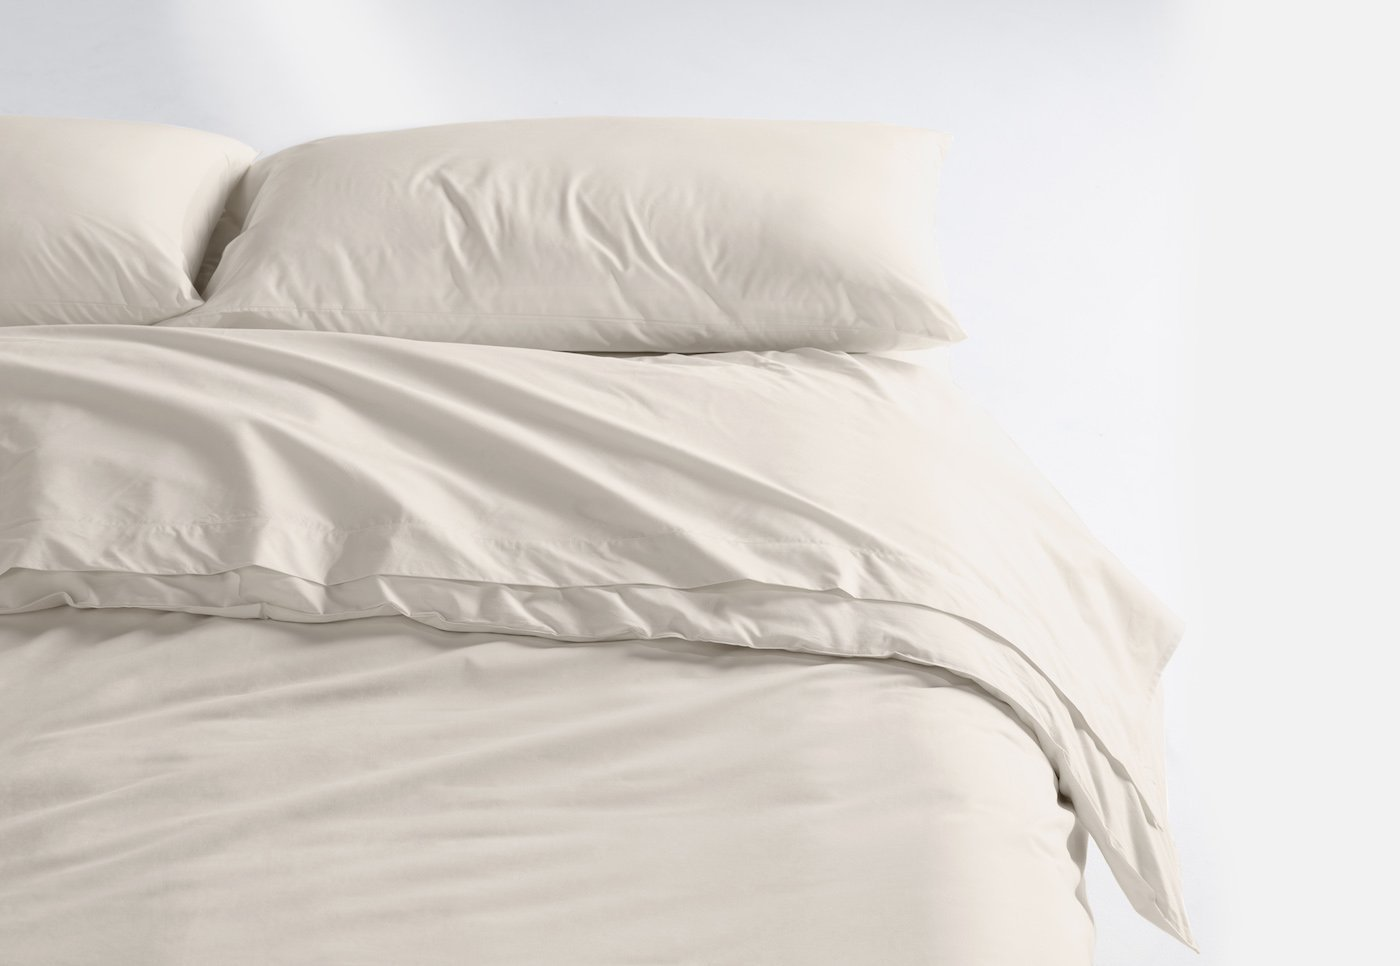 Image of Casper Sheet Set Durable Supima Cotton - Best Sheets for Night Sweats